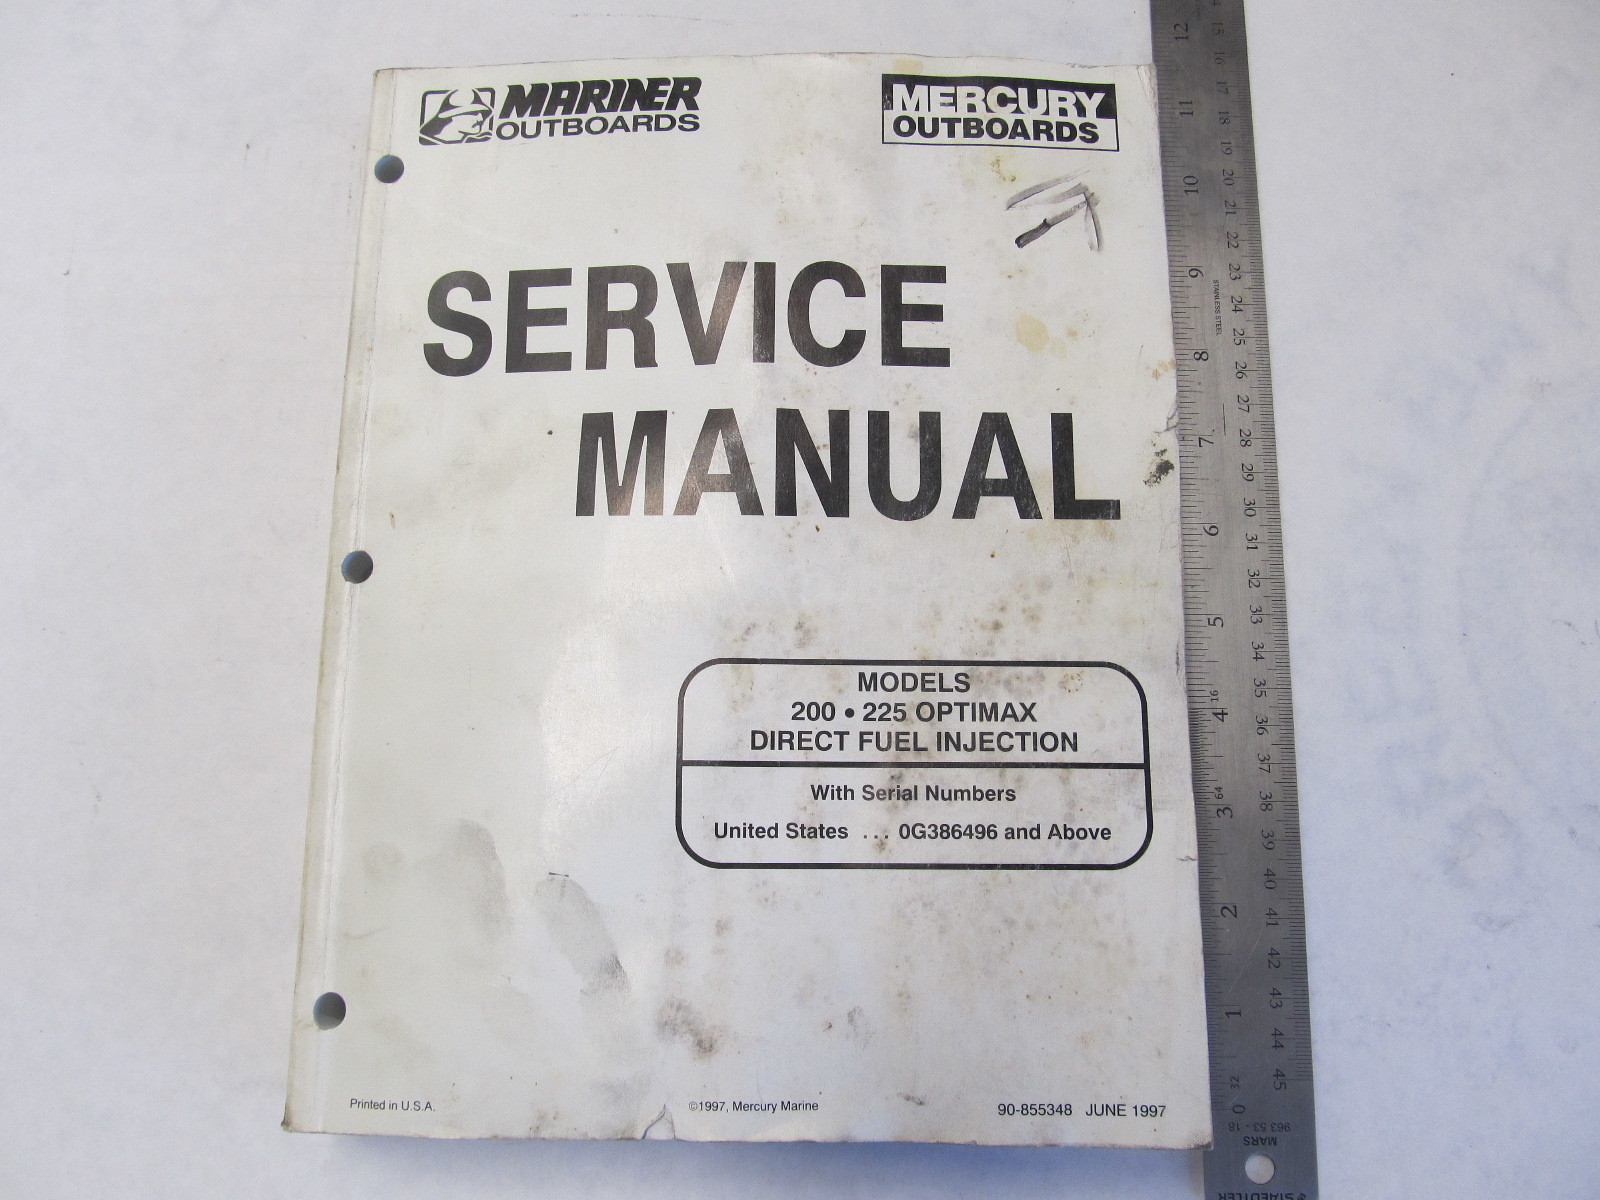 1997 Mercury Mariner Outboard Service Manual 200 225 Optimax